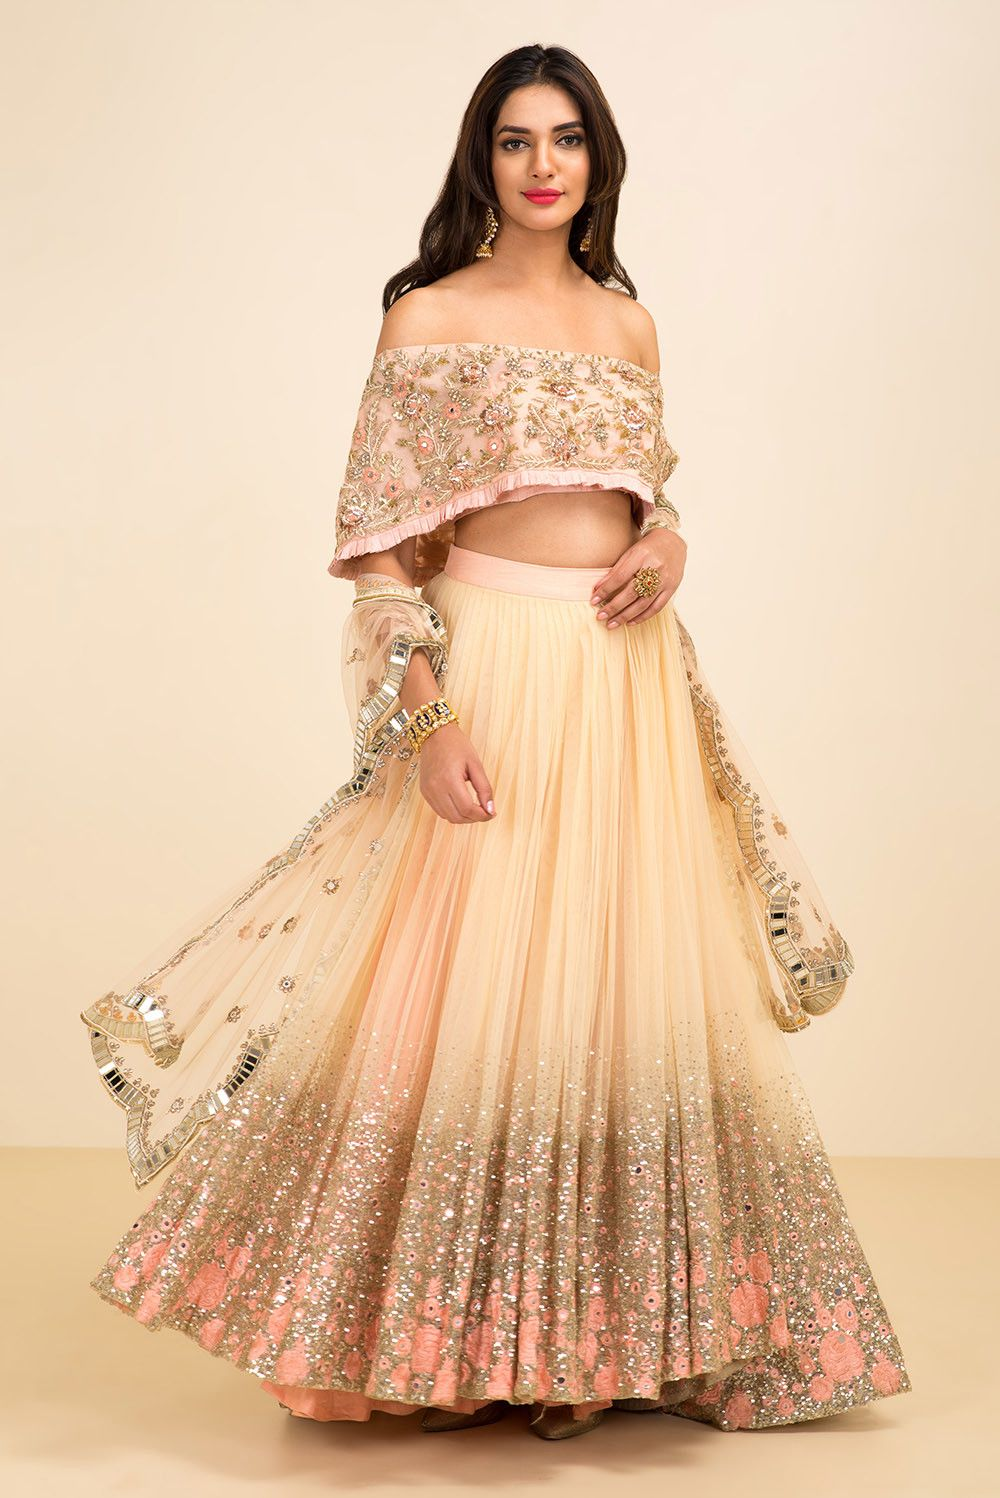 Indias Largest Fashion Rental Service India Fashion